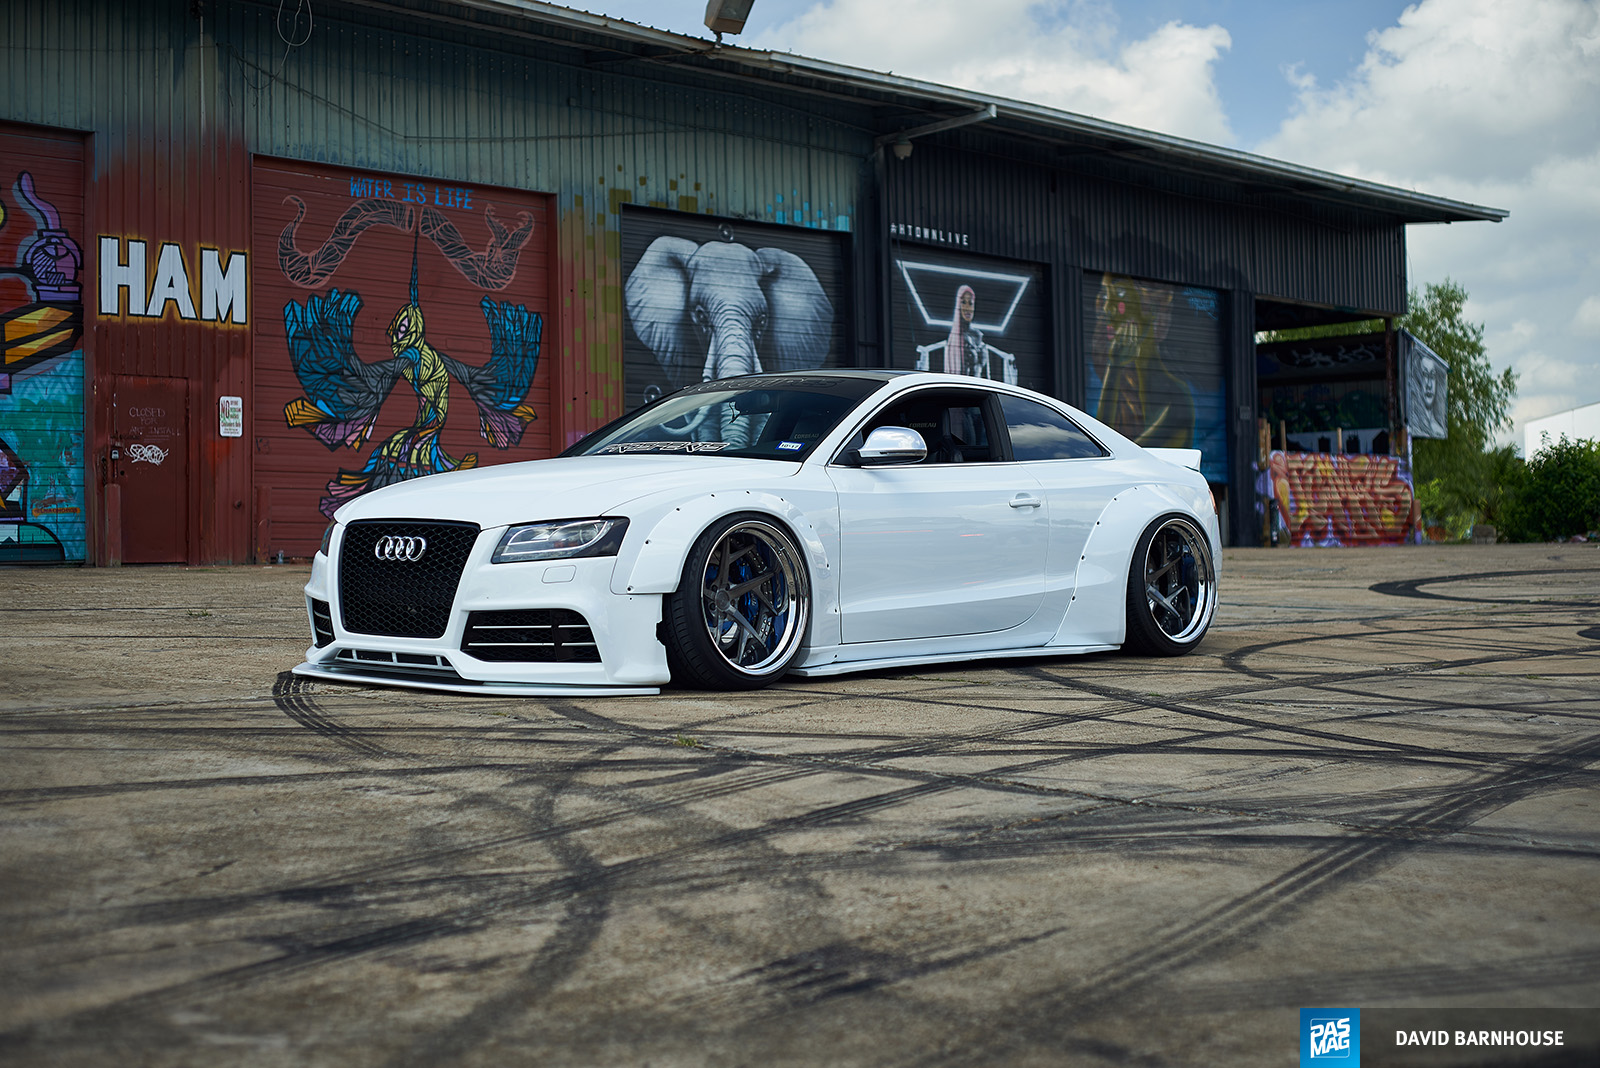 18 Thomas Ho 2009 Audi S5 pasmag builds to follow